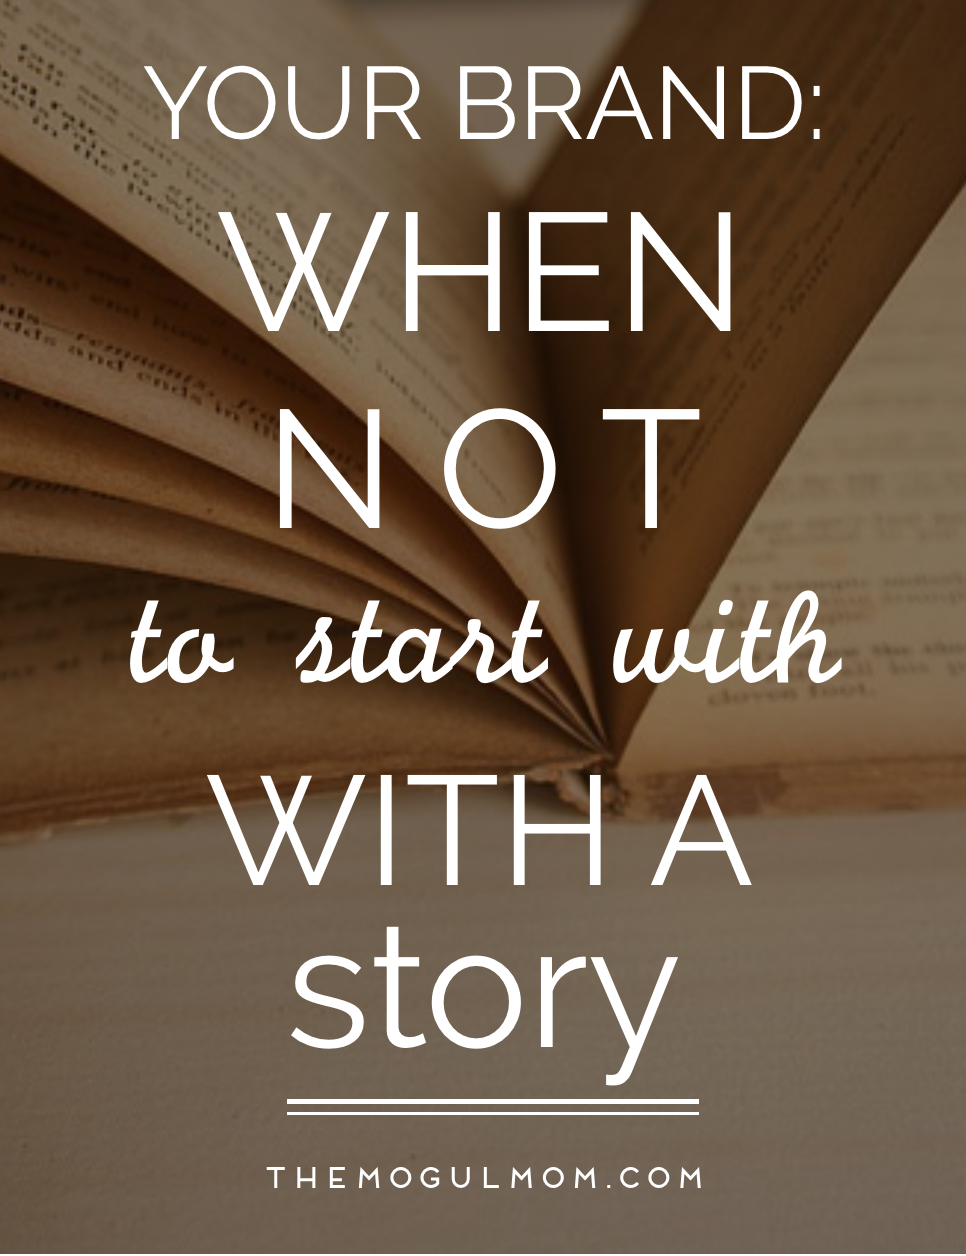 Business Networking: When NOT to Start with a Story